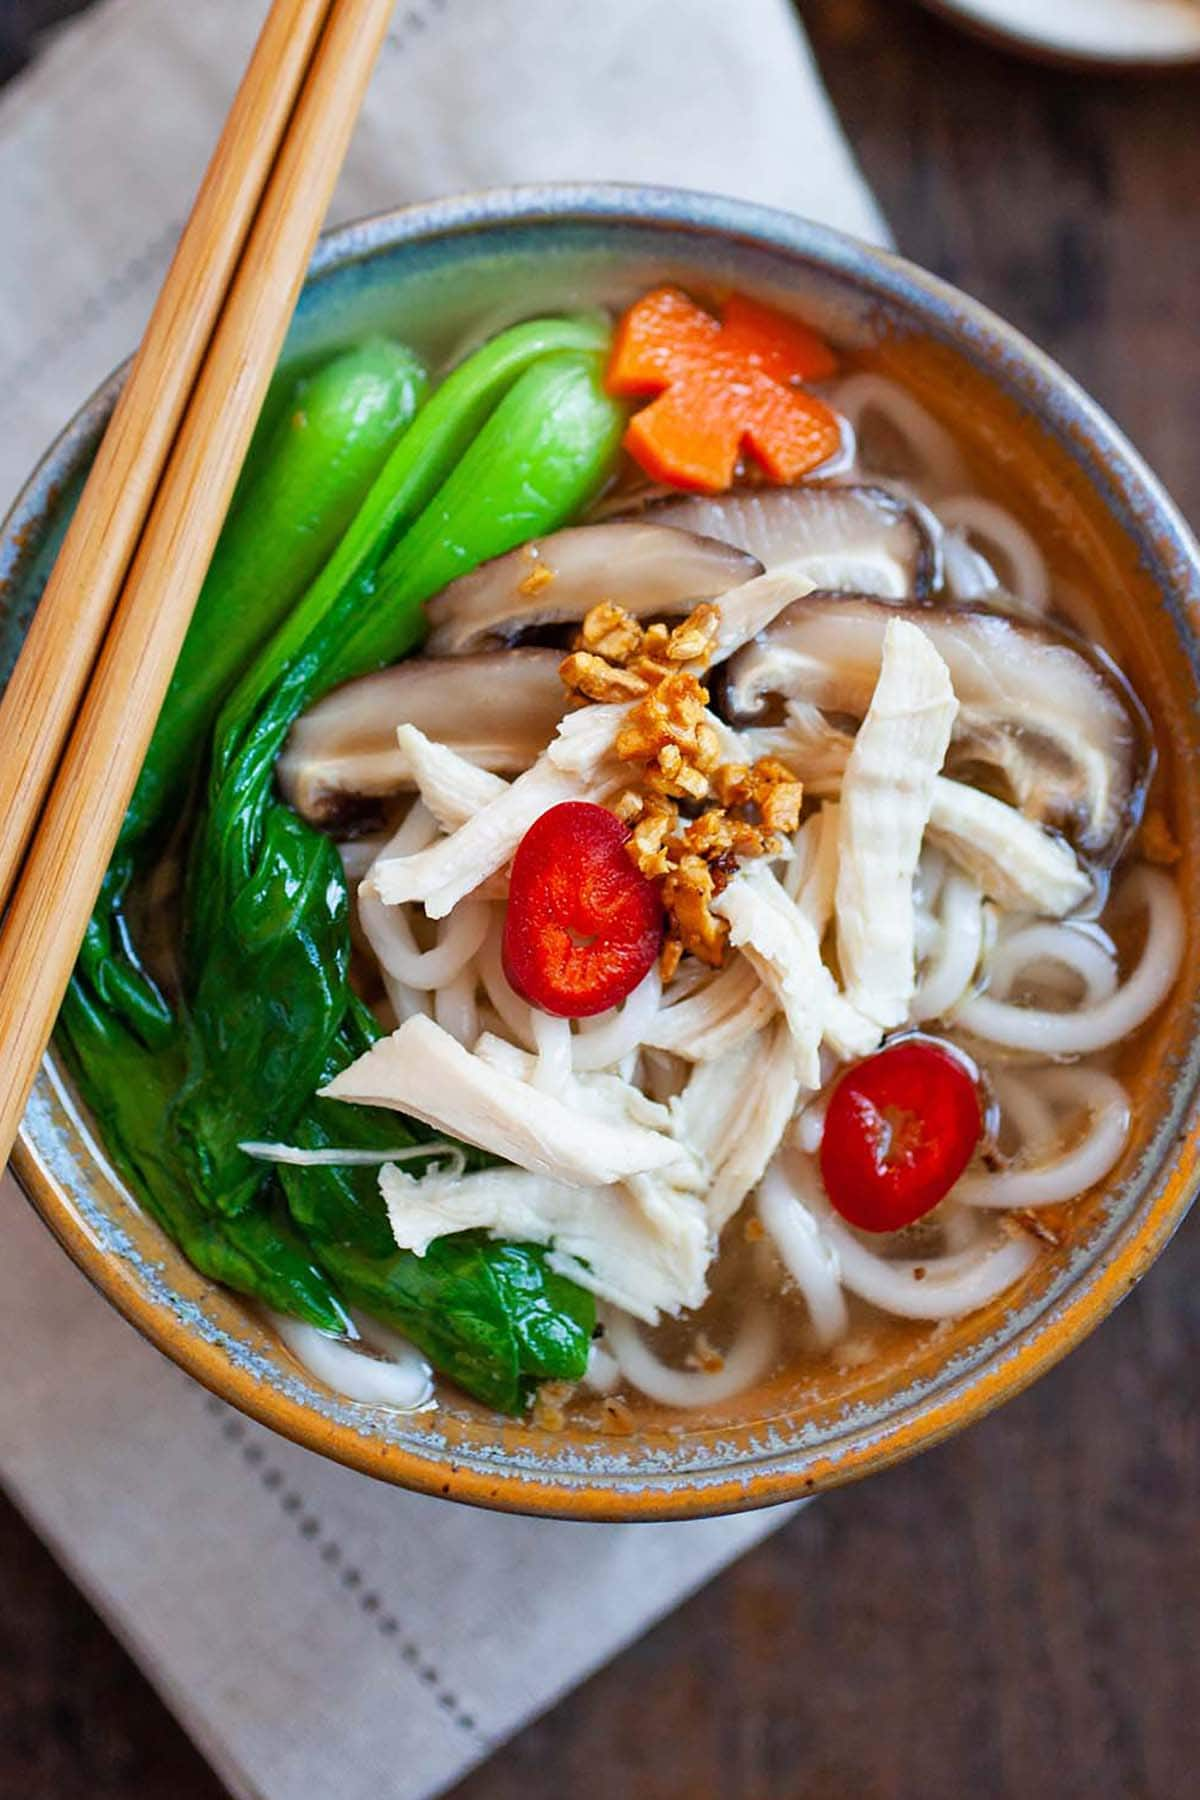 Asian noodle soup with chicken, bok choy vegetables and noodles in a bowl.